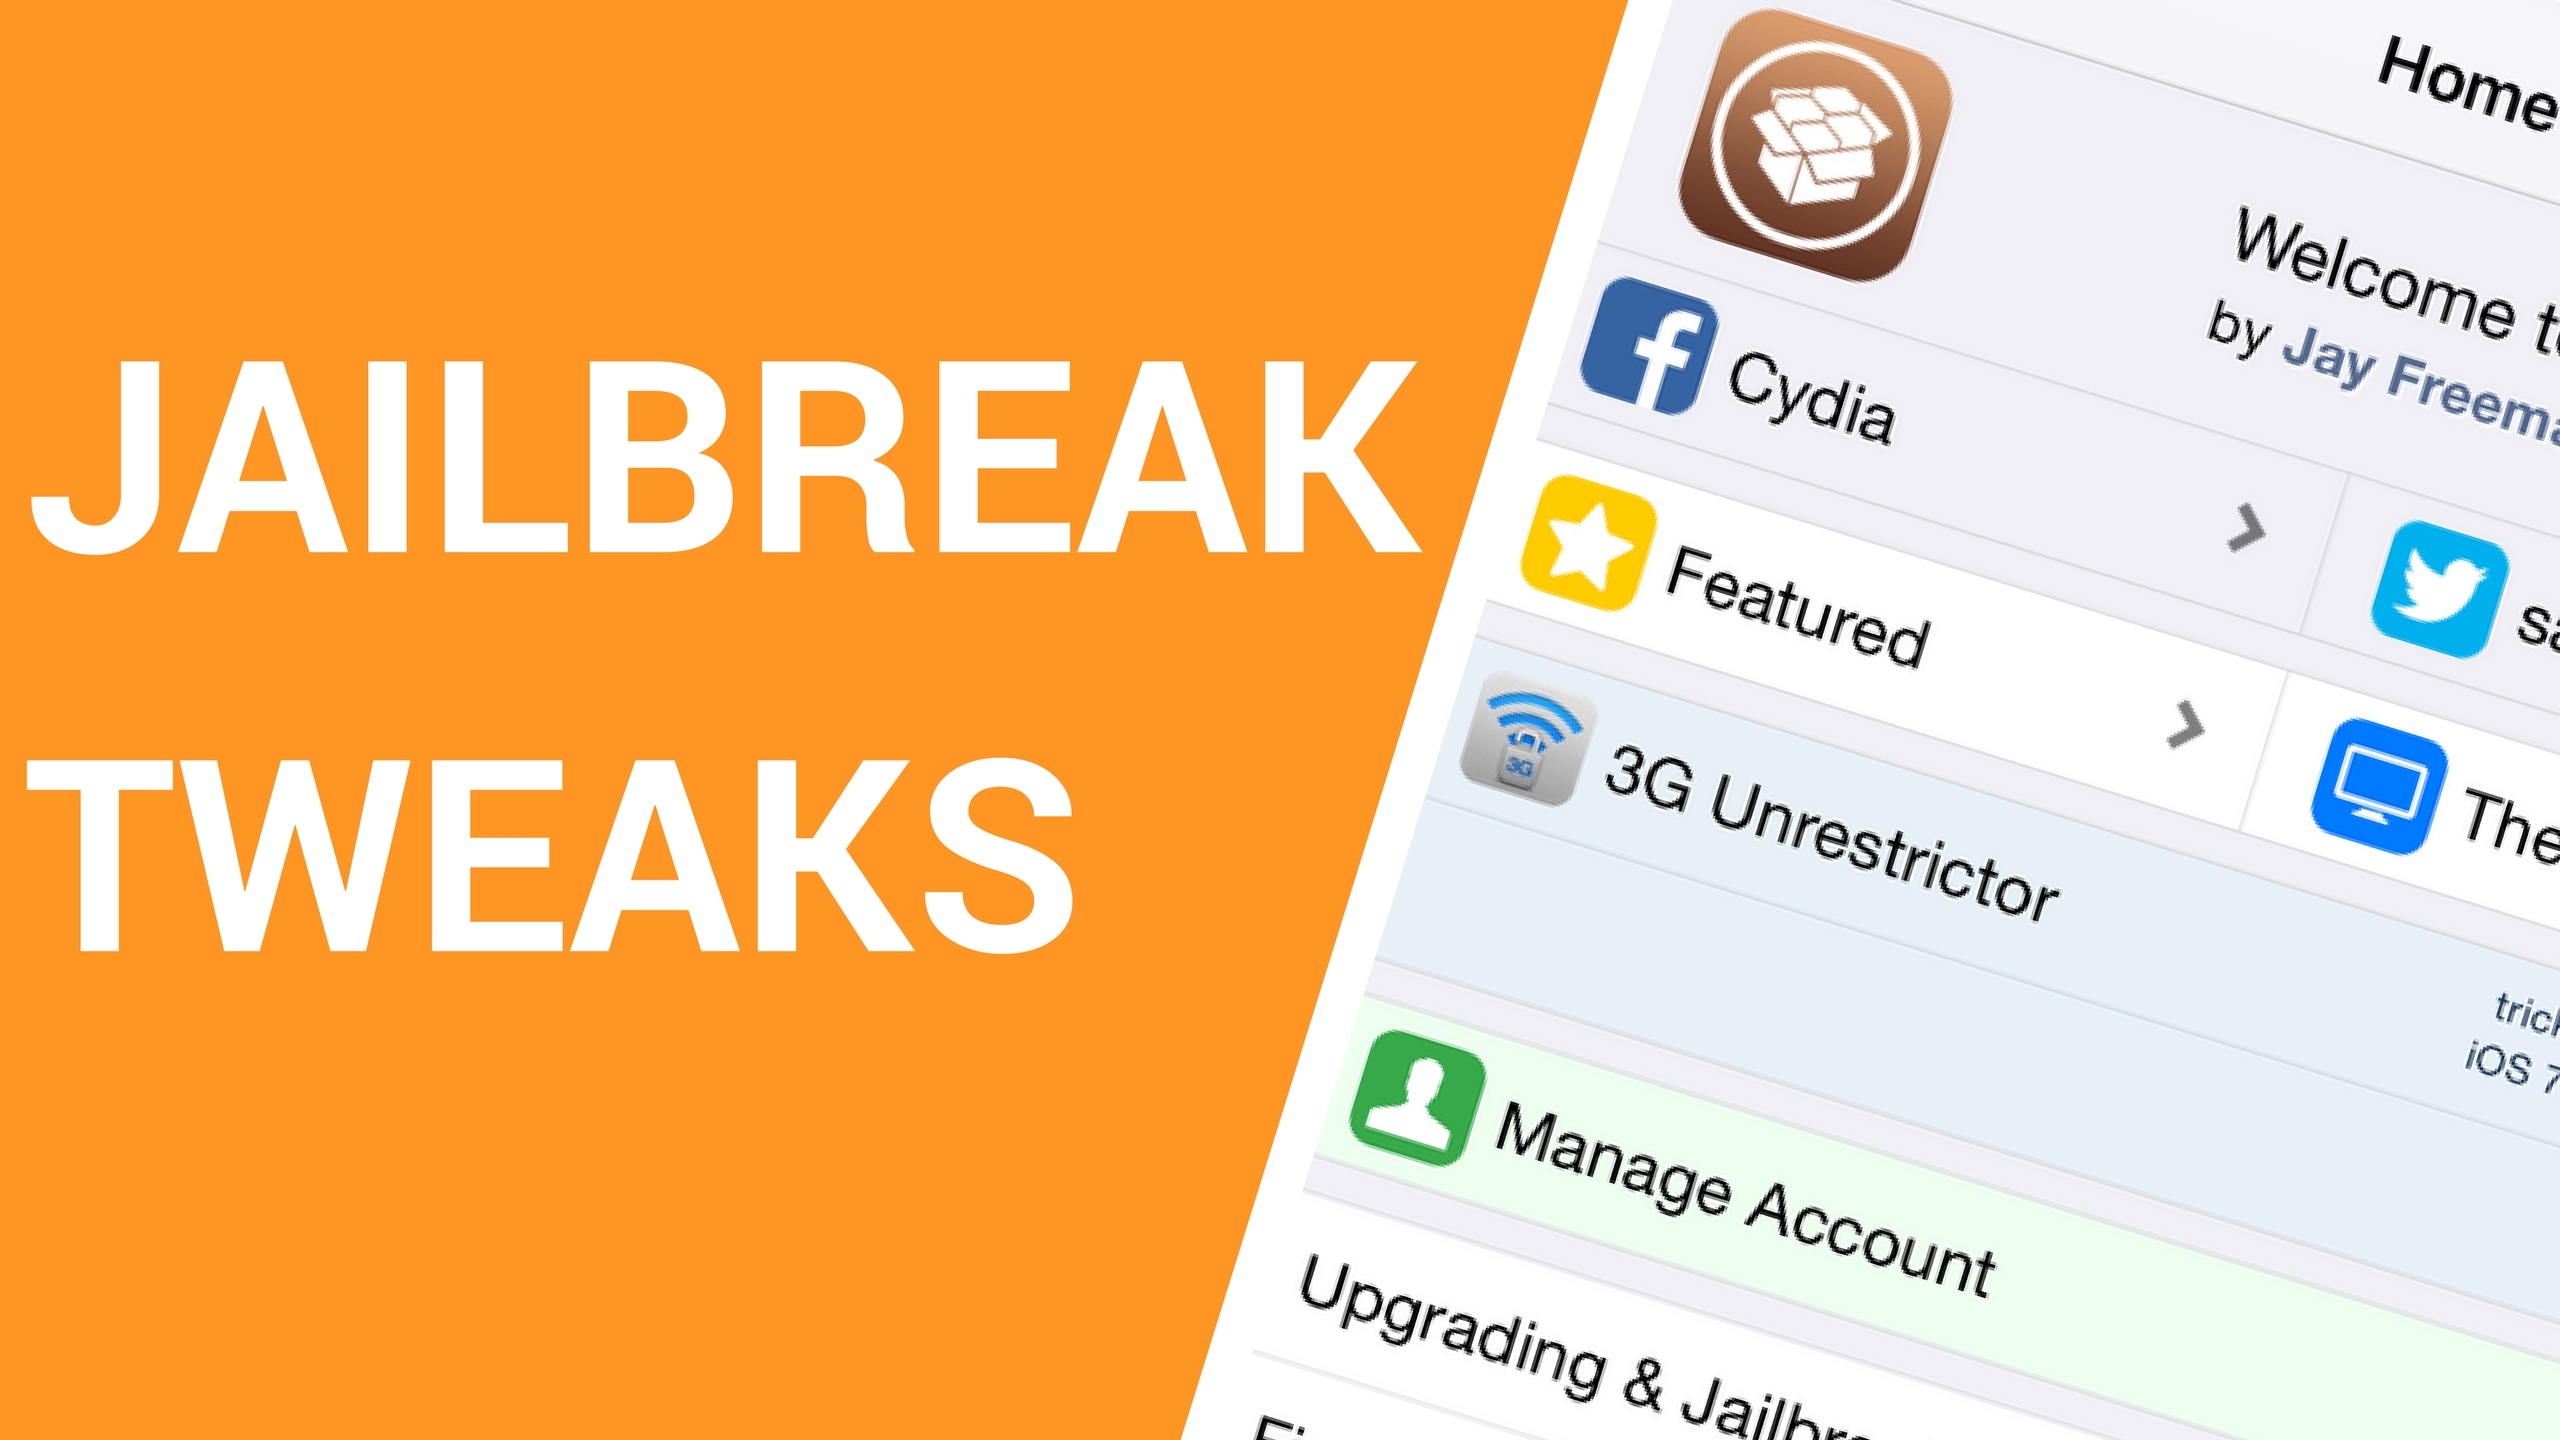 Jailbreak tweaks of the week: DNDAllow, InstaLauncher